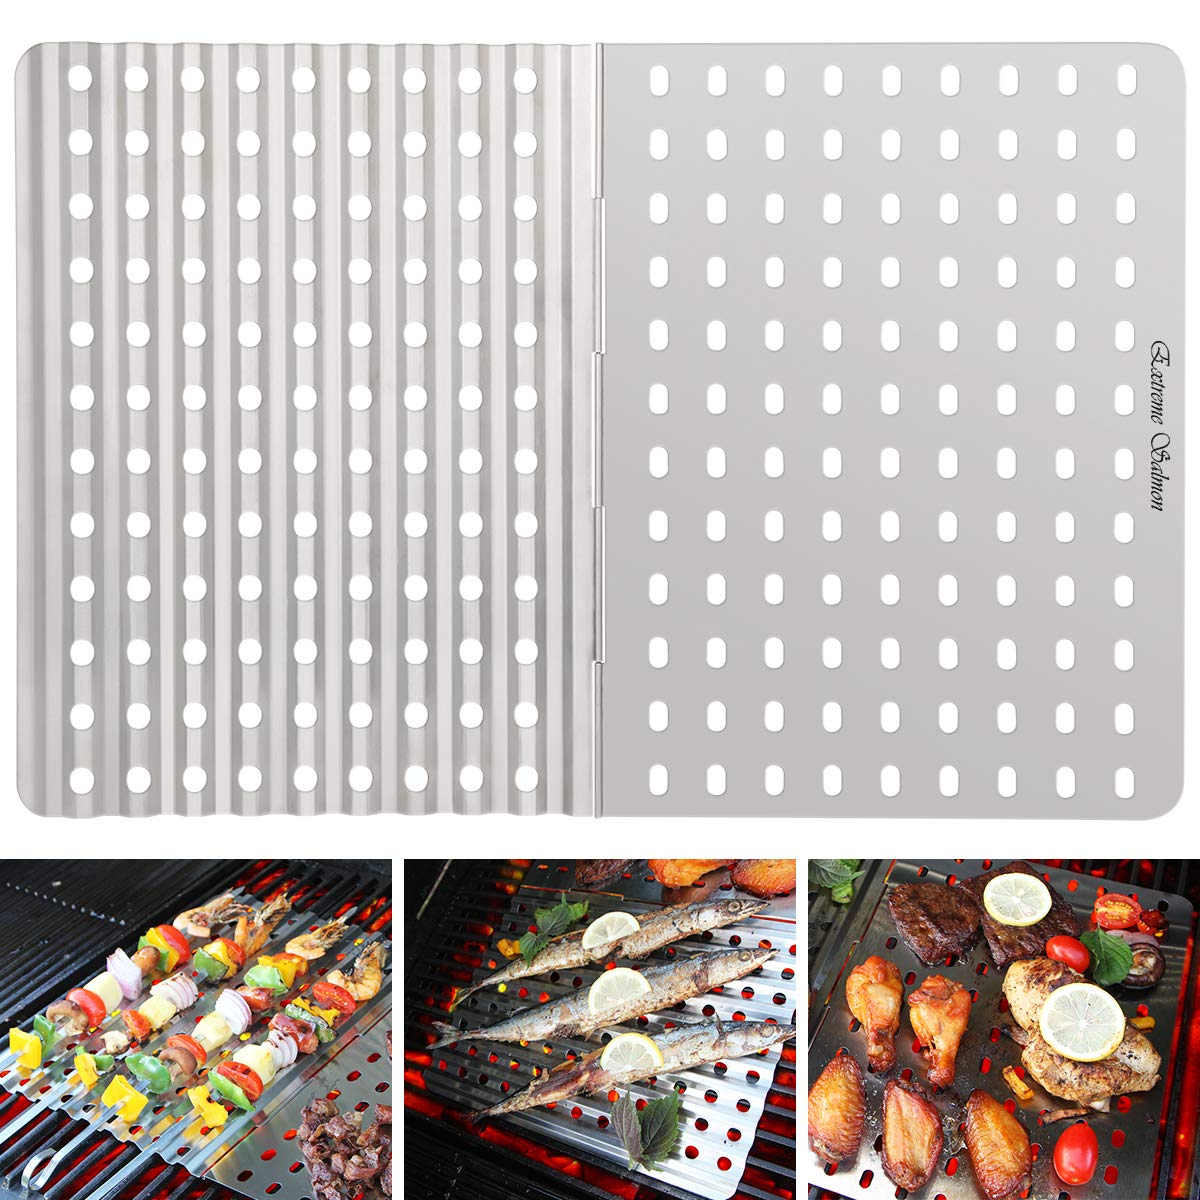 Extreme Salmon Grill Mat, BBQ Grill Mats Grilling Replacement Stainless Steel Grill Tray Grid Reusable Barbecue Grill Accessories for Grilling Meat Vegetables for Gas Charcoal Grill Oven Smoker by Extreme Salmon